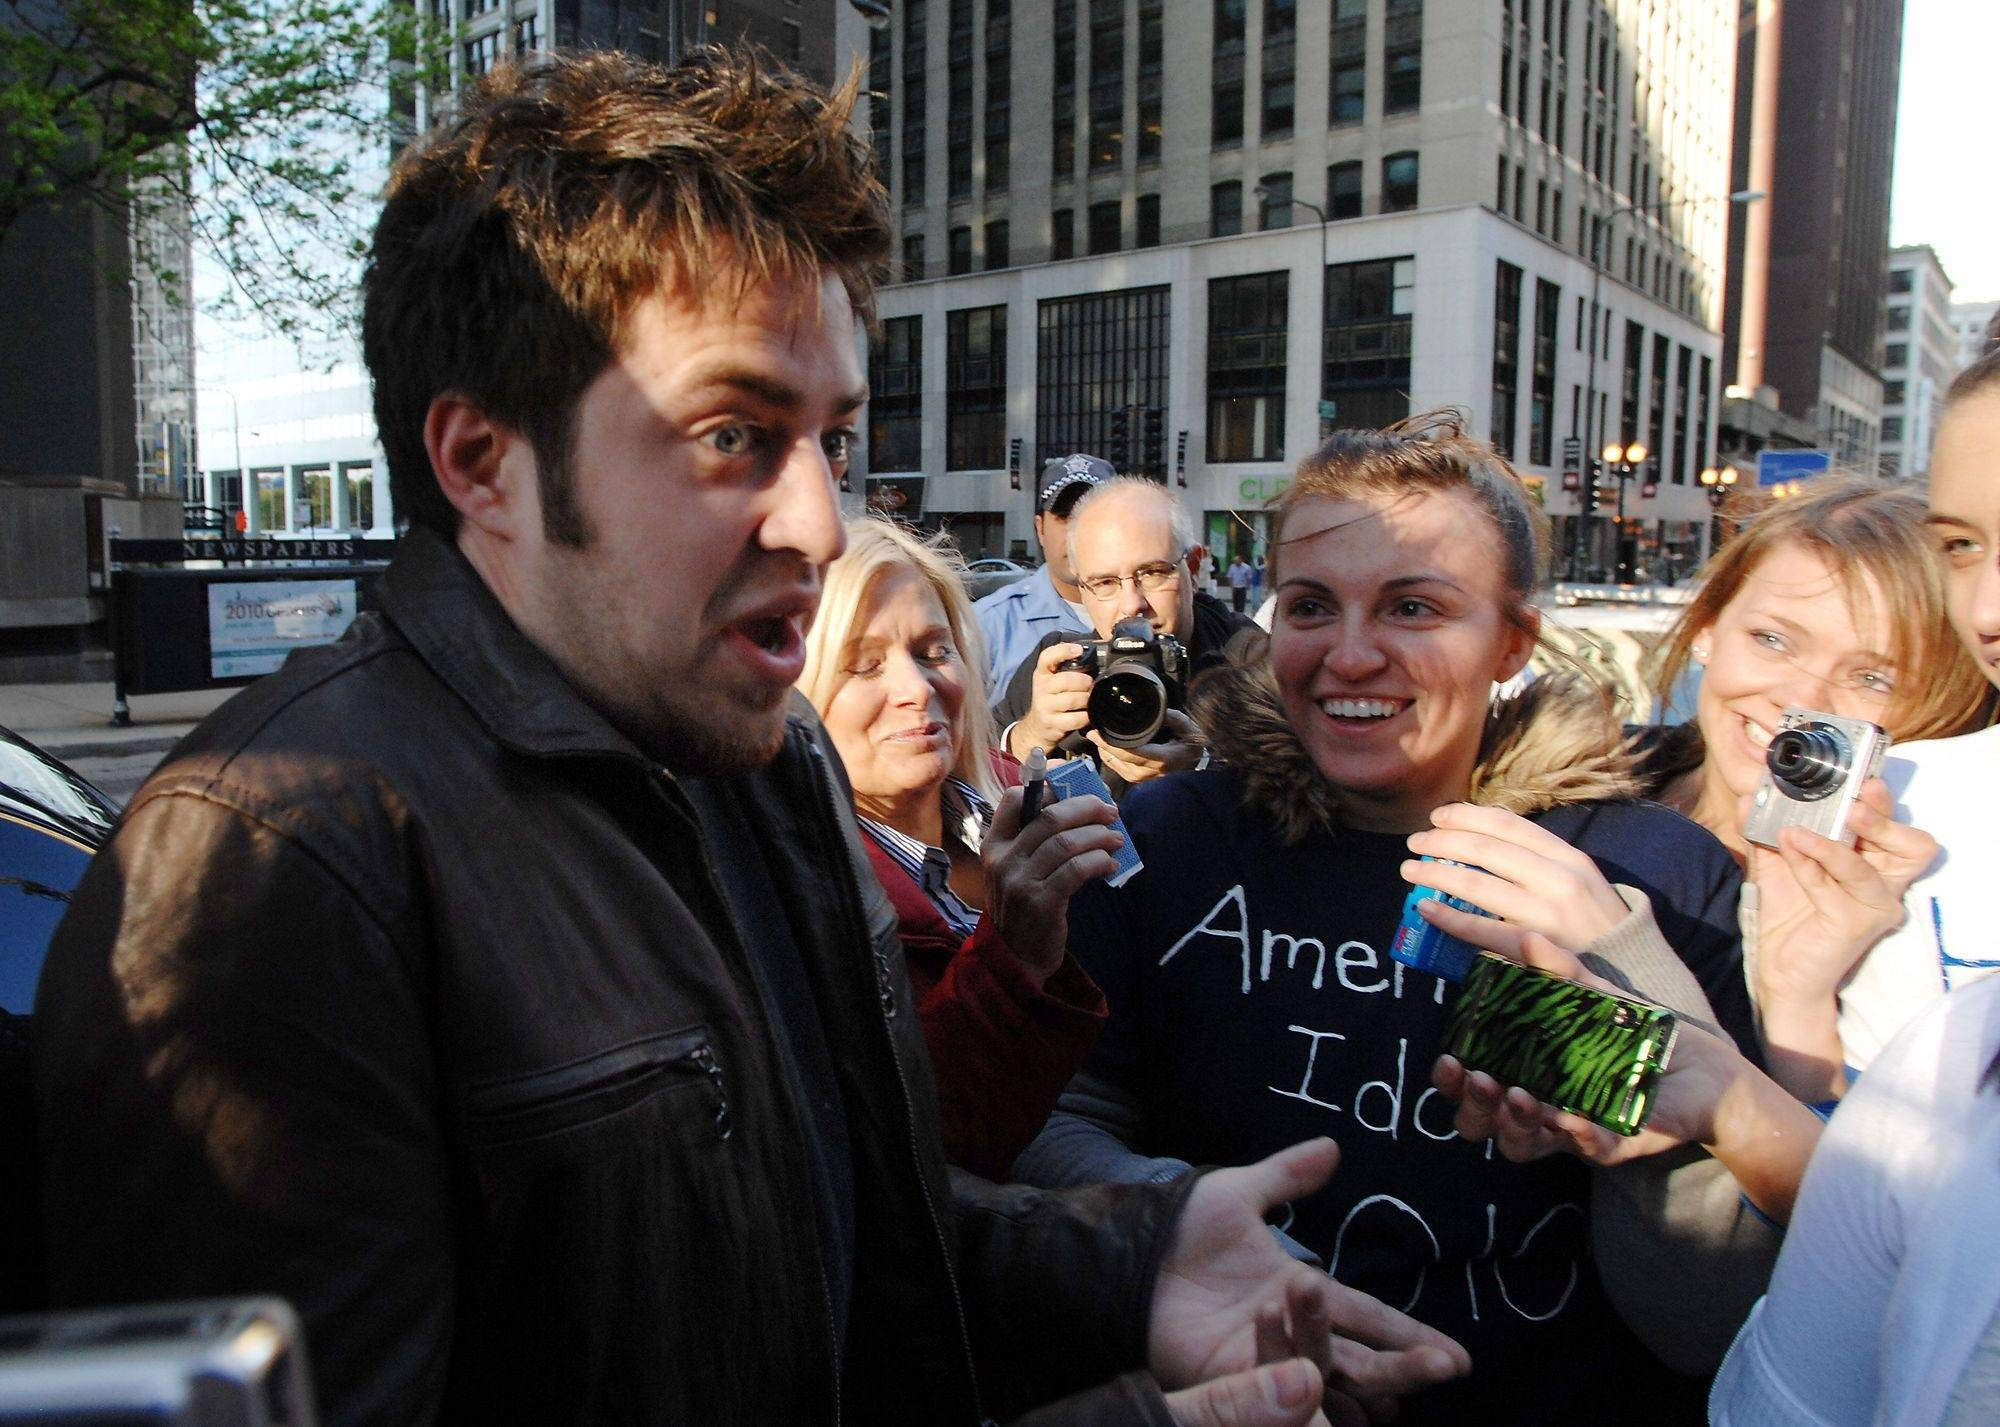 Lee is shocked by the fan reaction as he is greeted by his fans outside the Fox 32 Studios in Chicago.